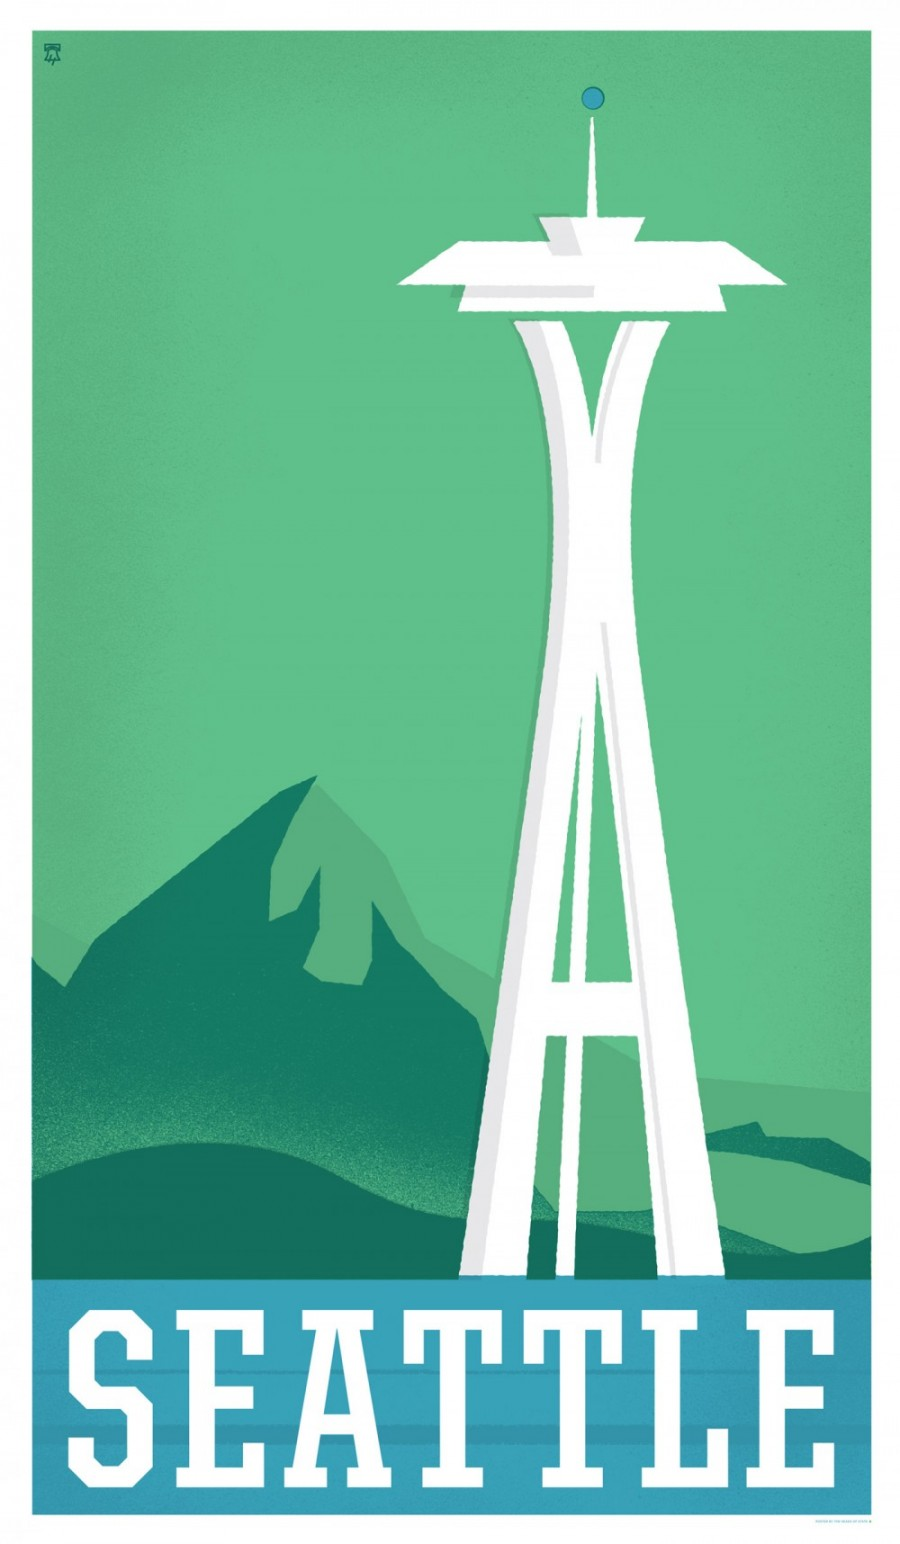 Seattle, Washington - Travel Poster Series - The Heads of State